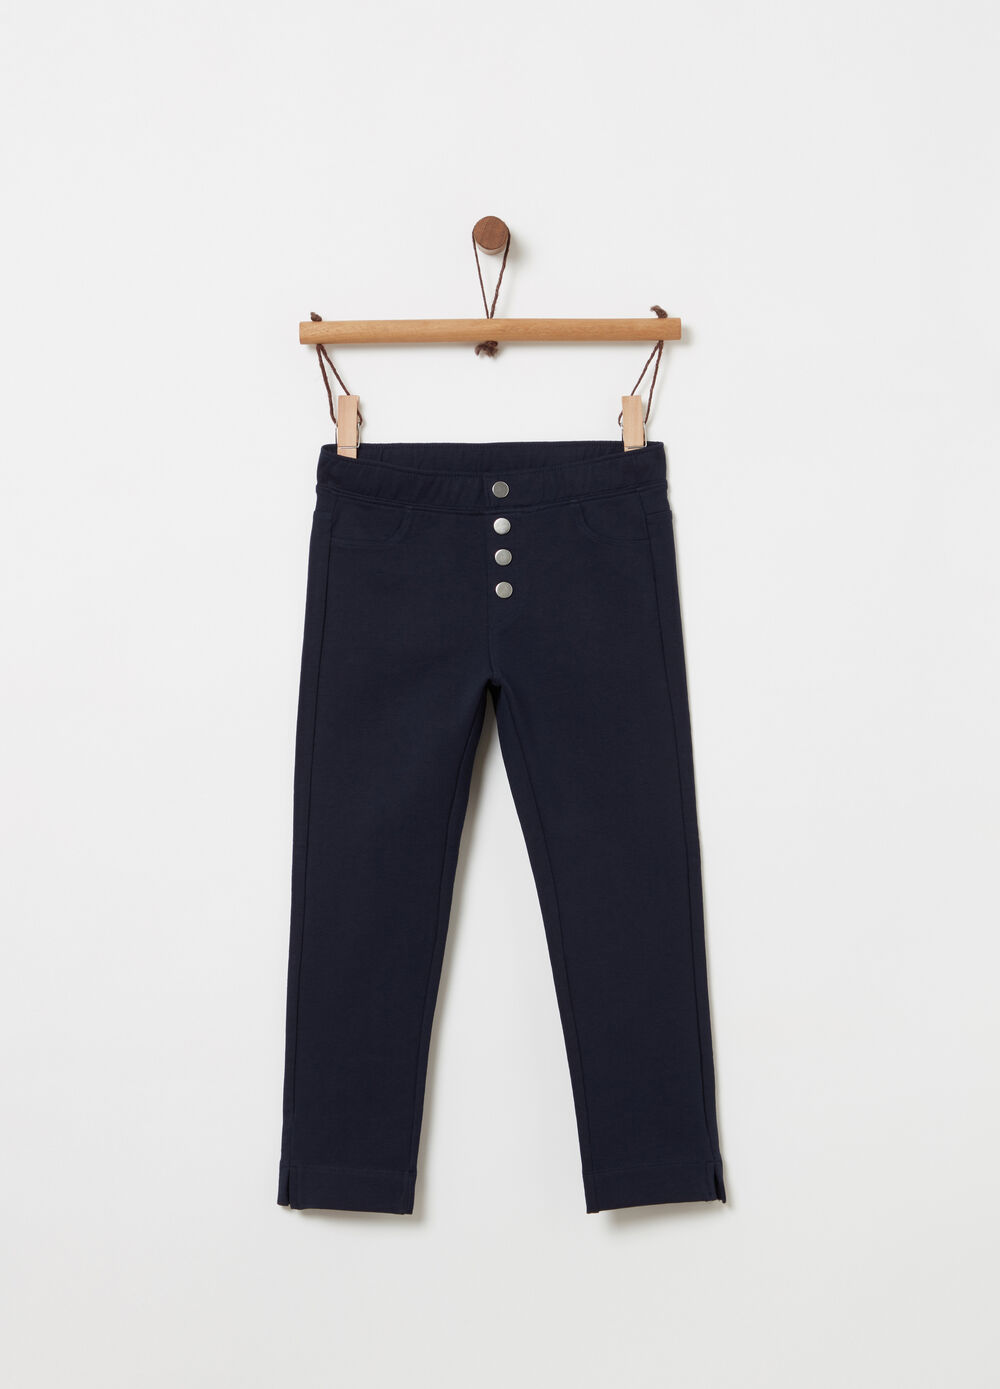 Jeggings with false buttons and pockets